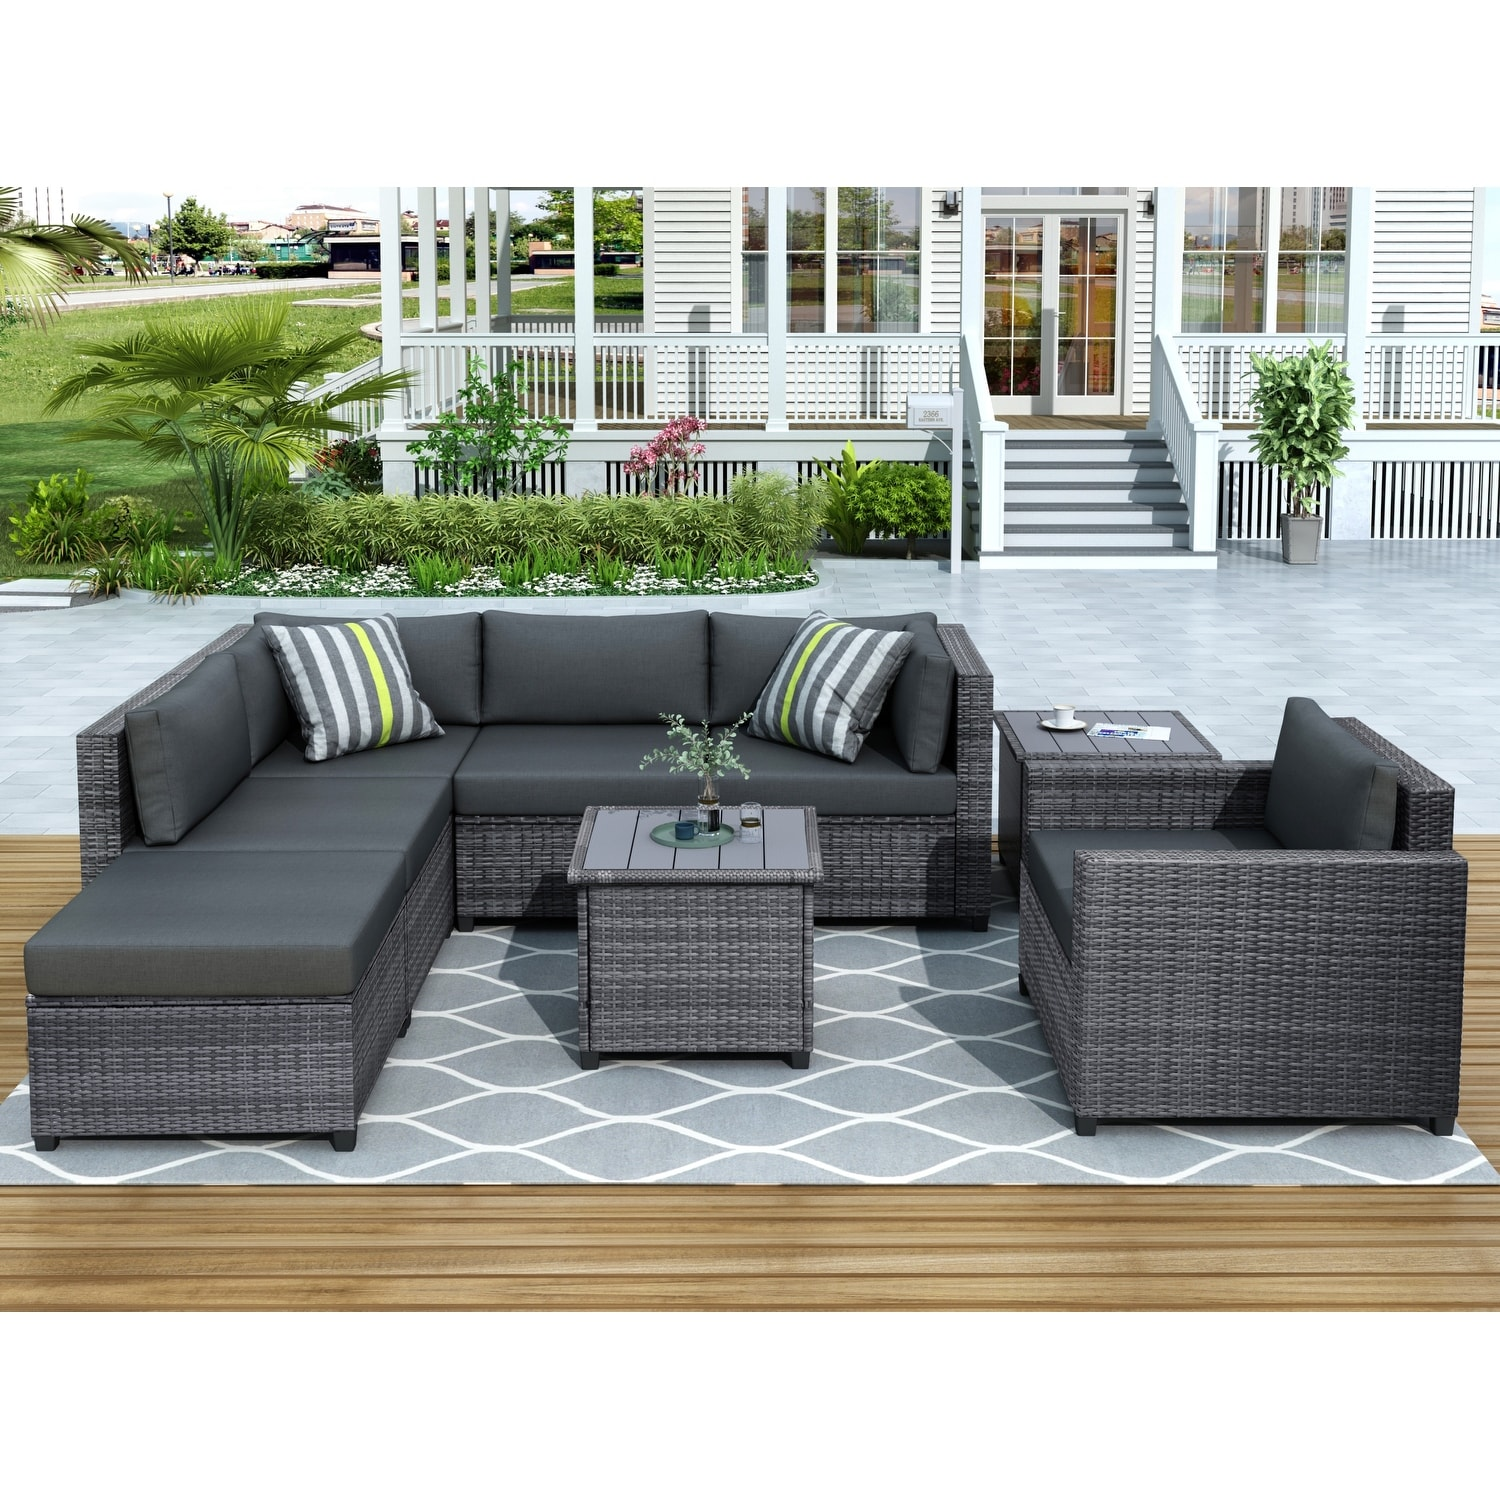 8 Piece Rattan Sectional Seating Group With Cushions Overstock 32013188